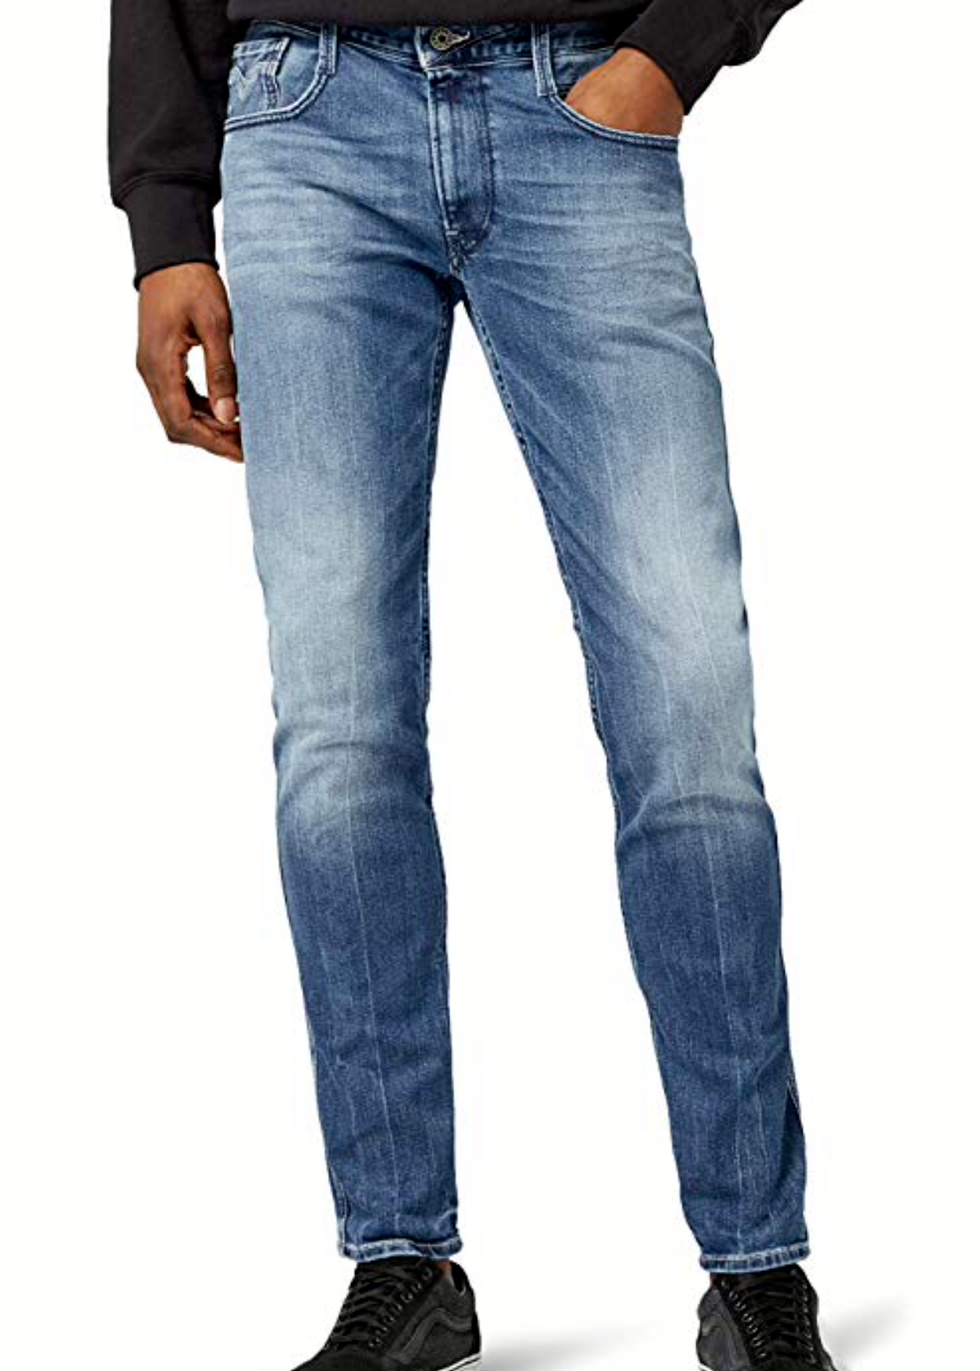 Da UOMO REPLAY Jeans ANBASS 31 x 34 Slim Fit Nuova Cartellini Authentic